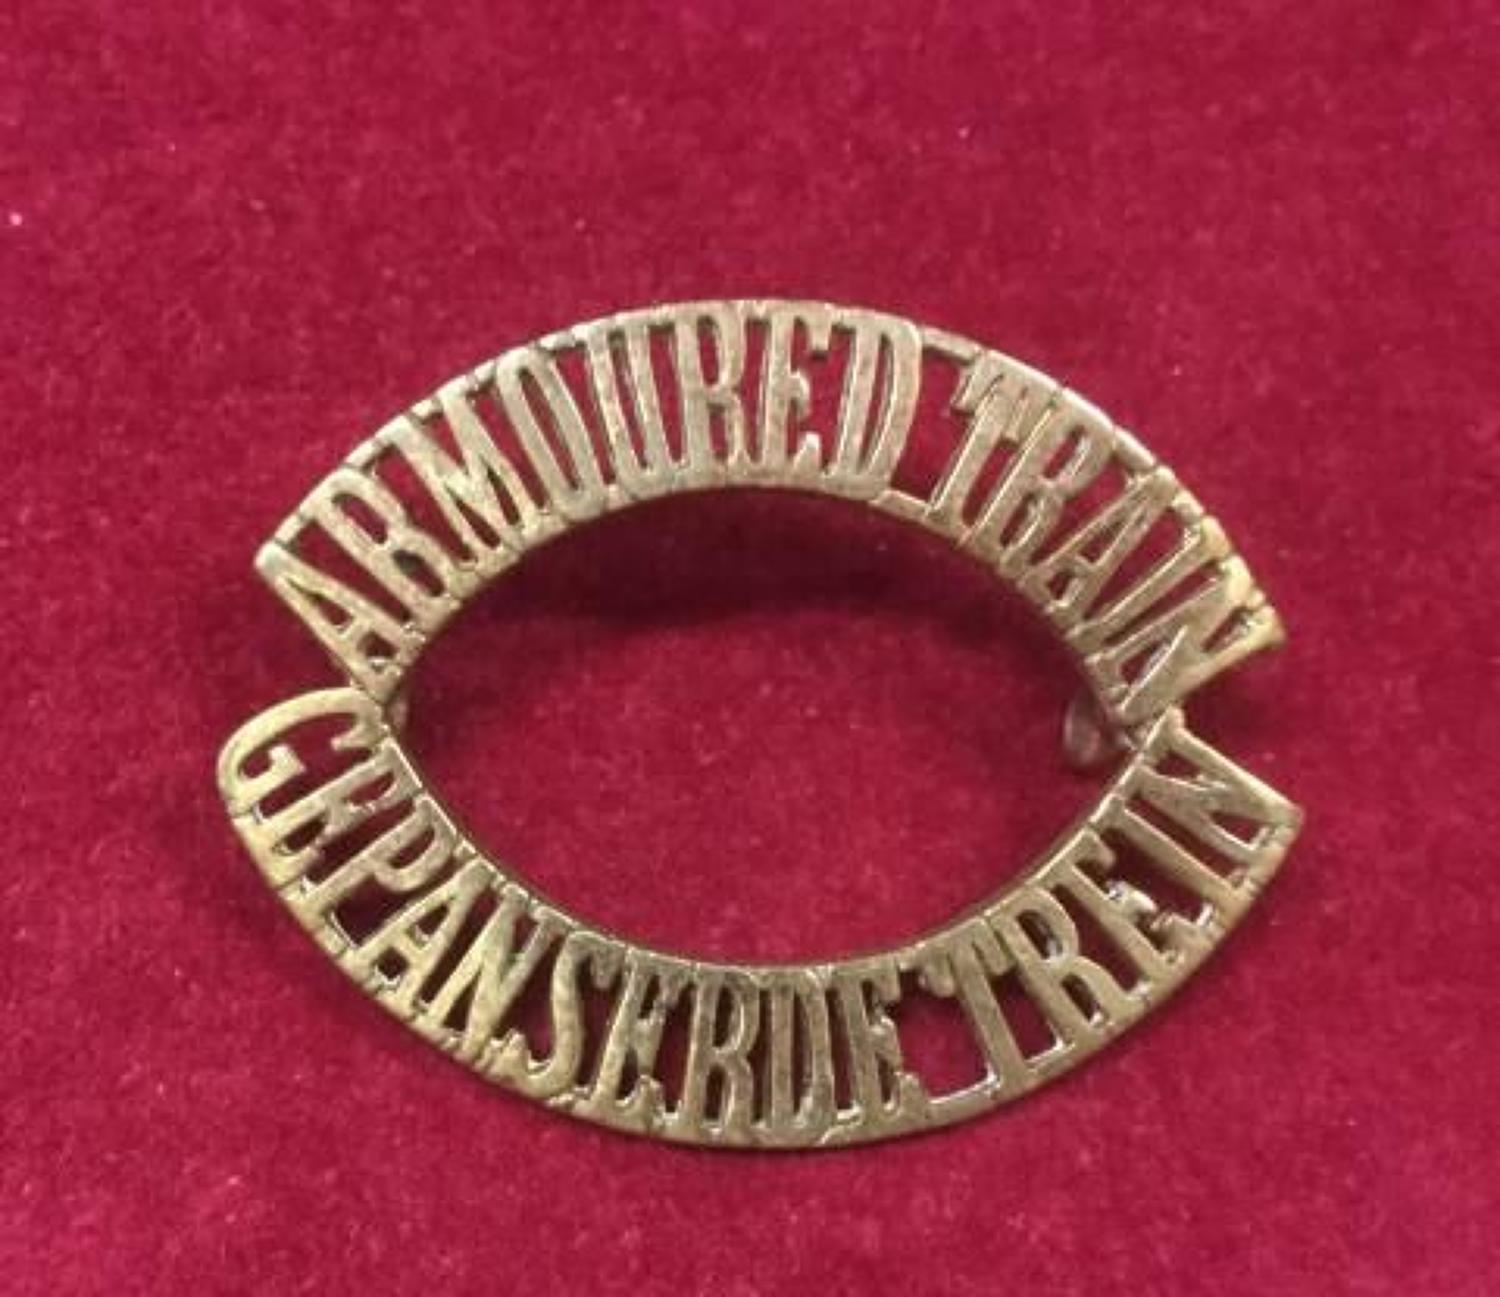 Armoured Train -  Gepansebde Trein Shoulder Title/Pagri Badge